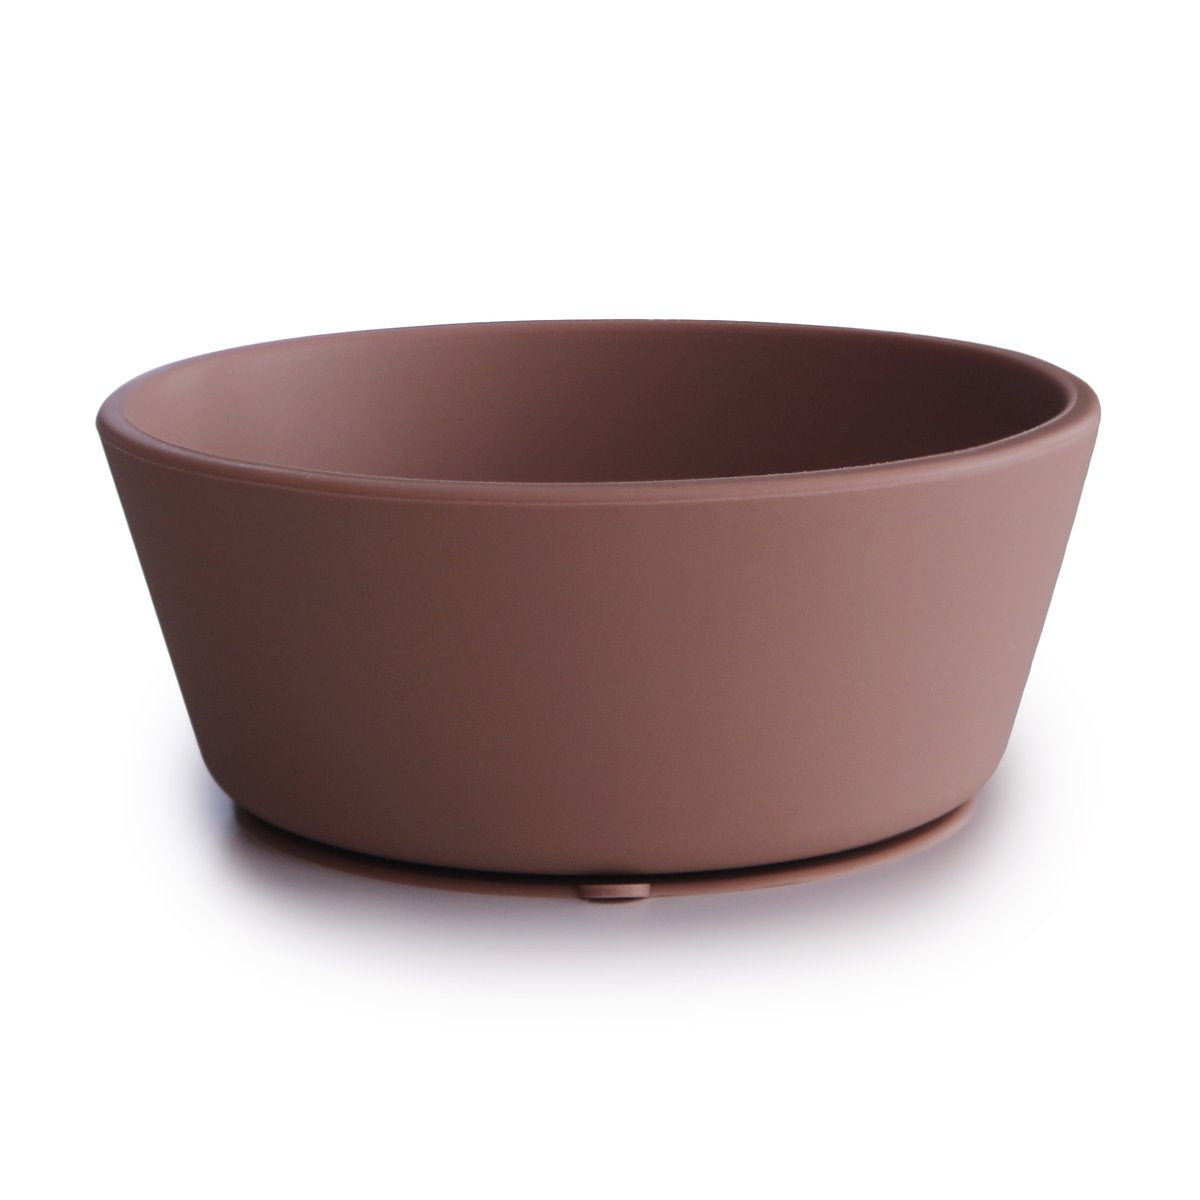 Silicone Suction Bowl | Cloudy Mauve - The Yellow Canary